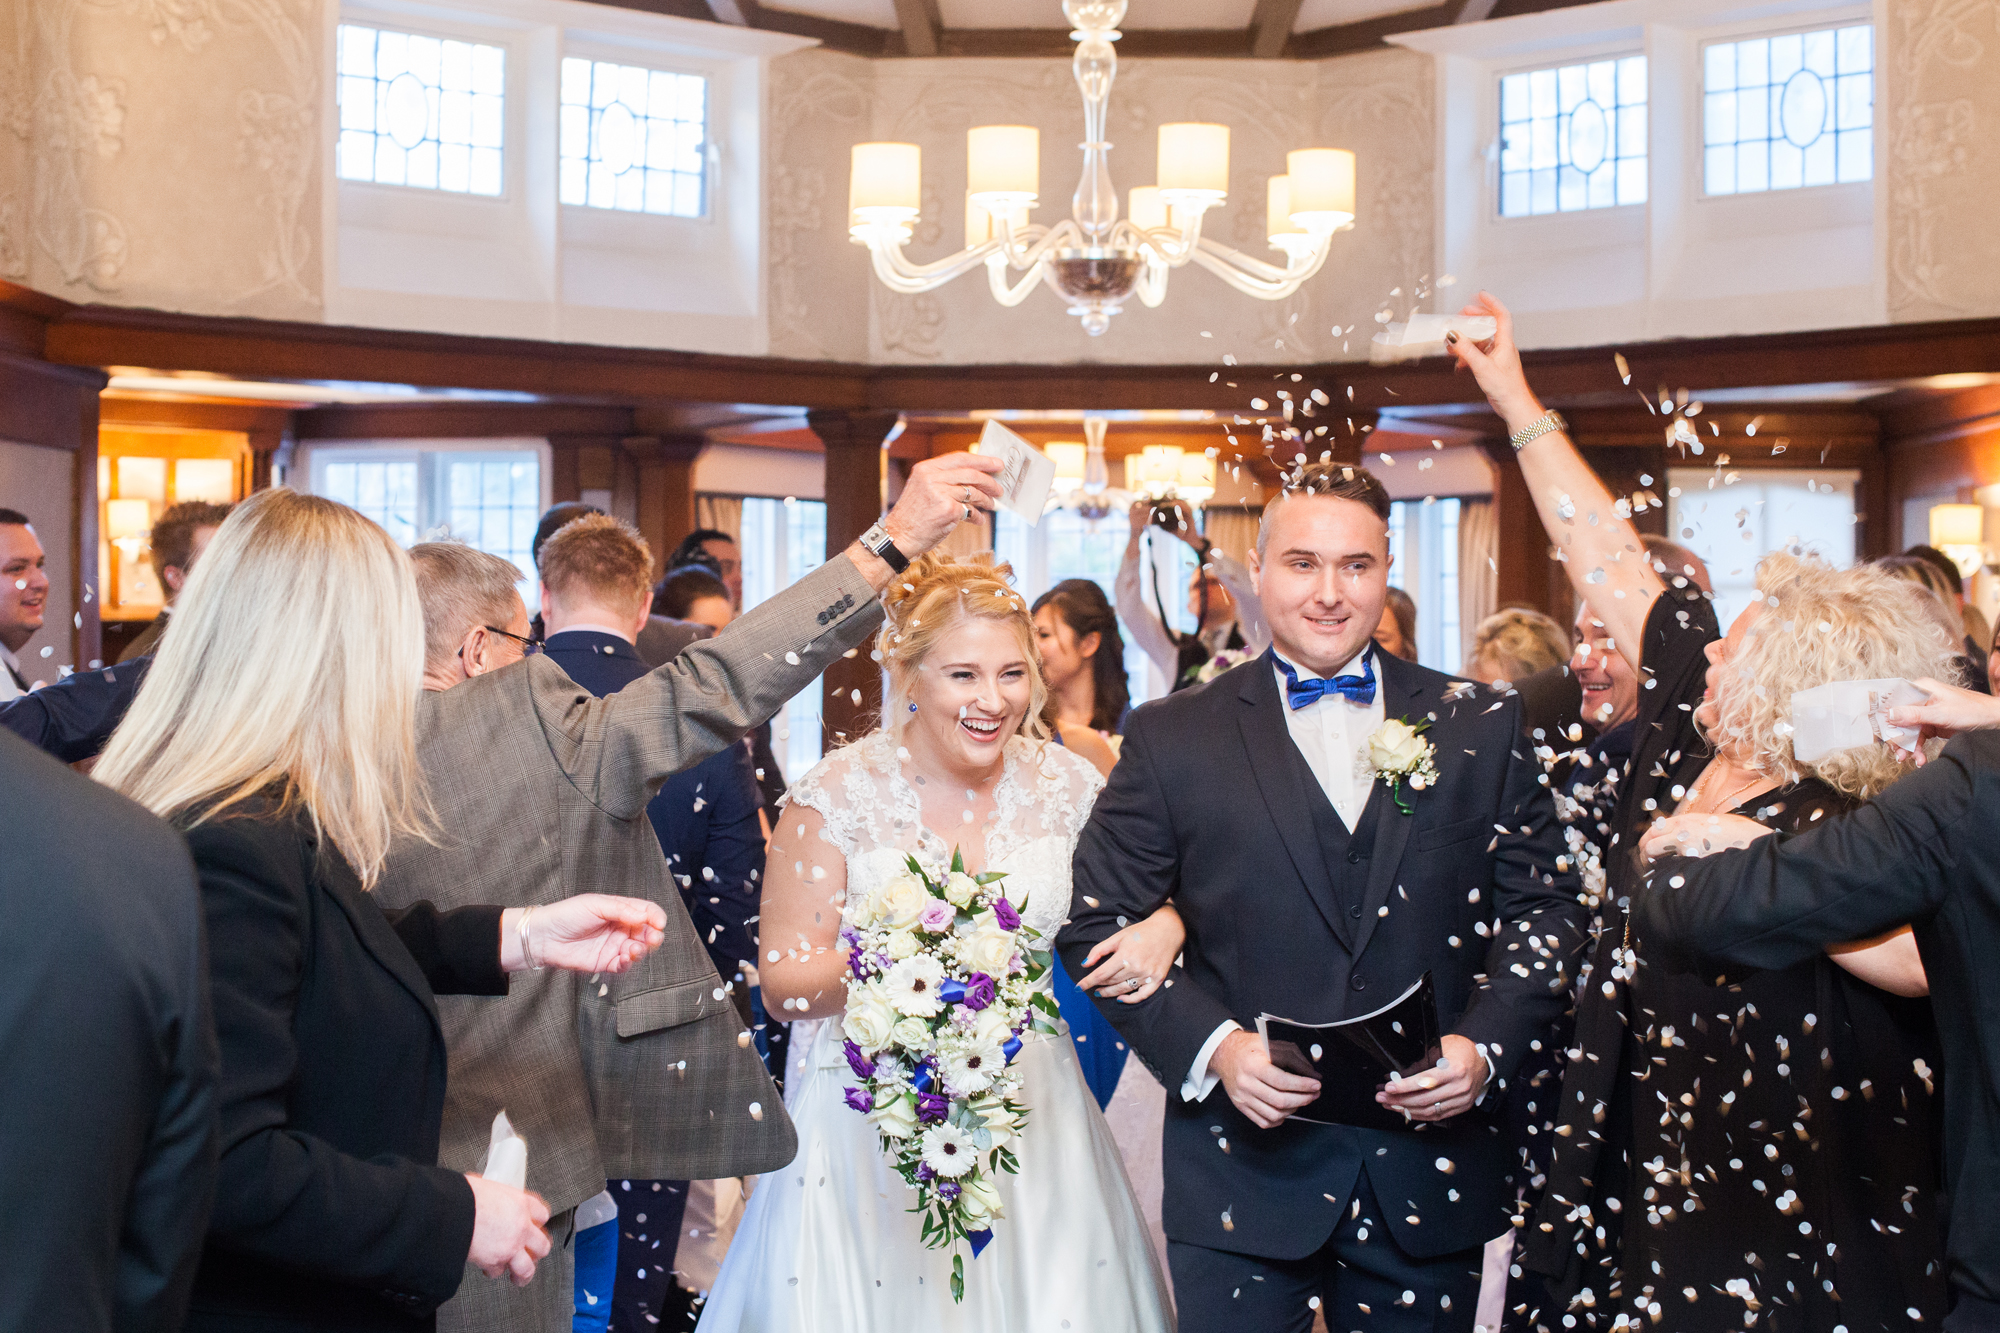 Richmond Hill Hotel bride and groom confetti